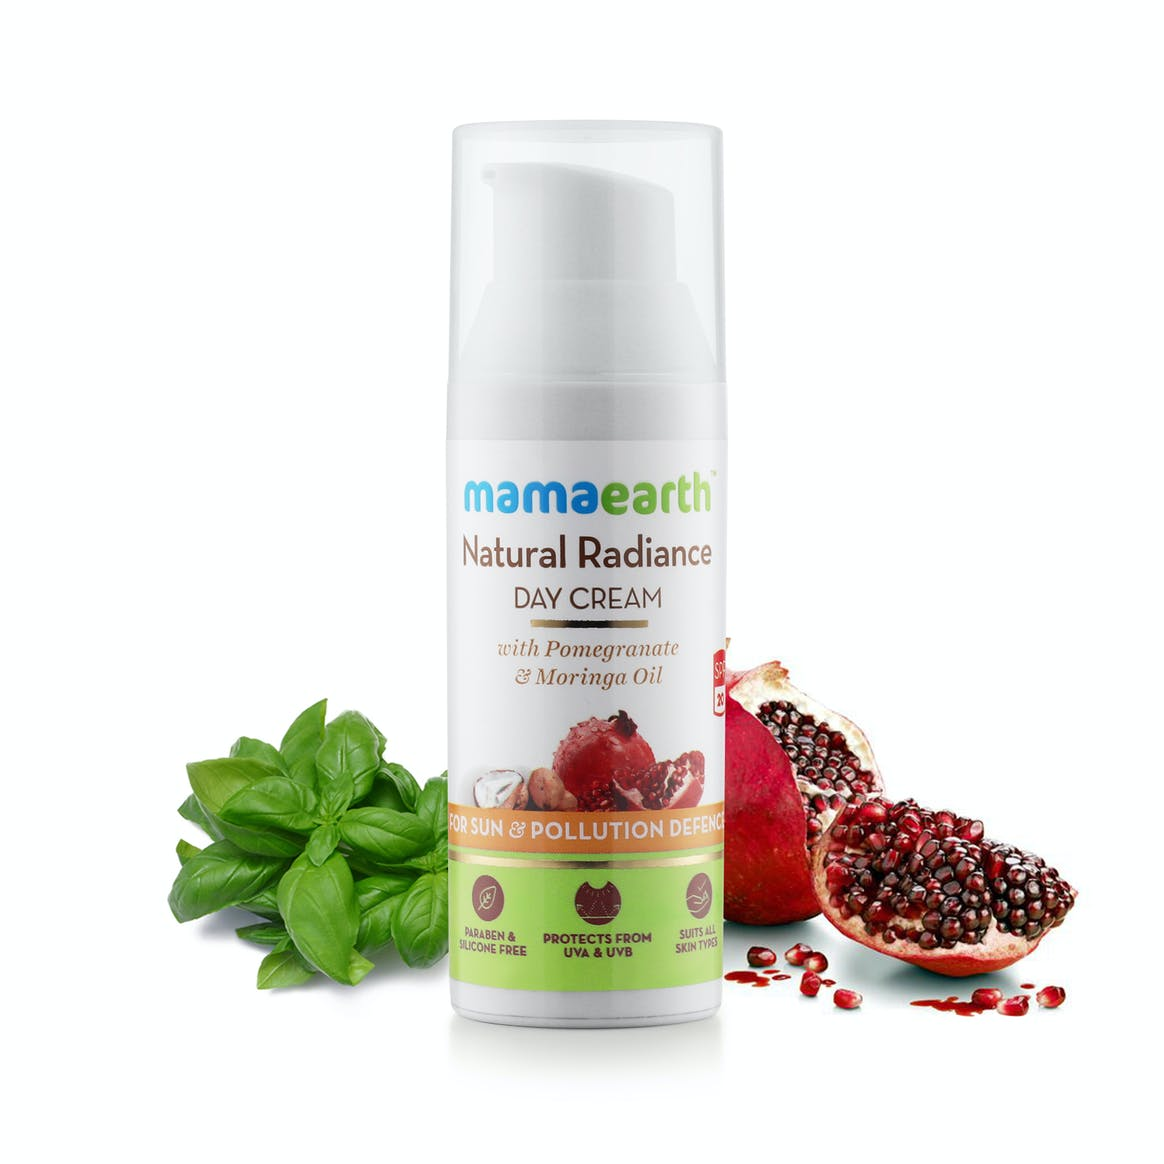 mama earth Natural Radiance Cream